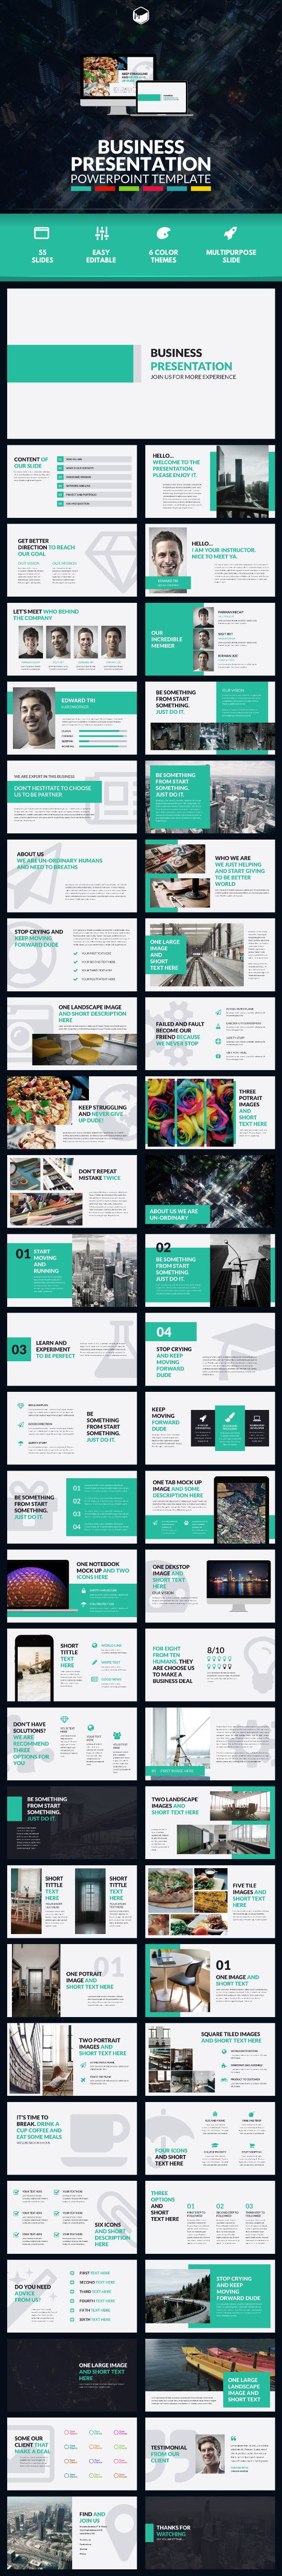 Business Presentation 3 - PowerPoint Template